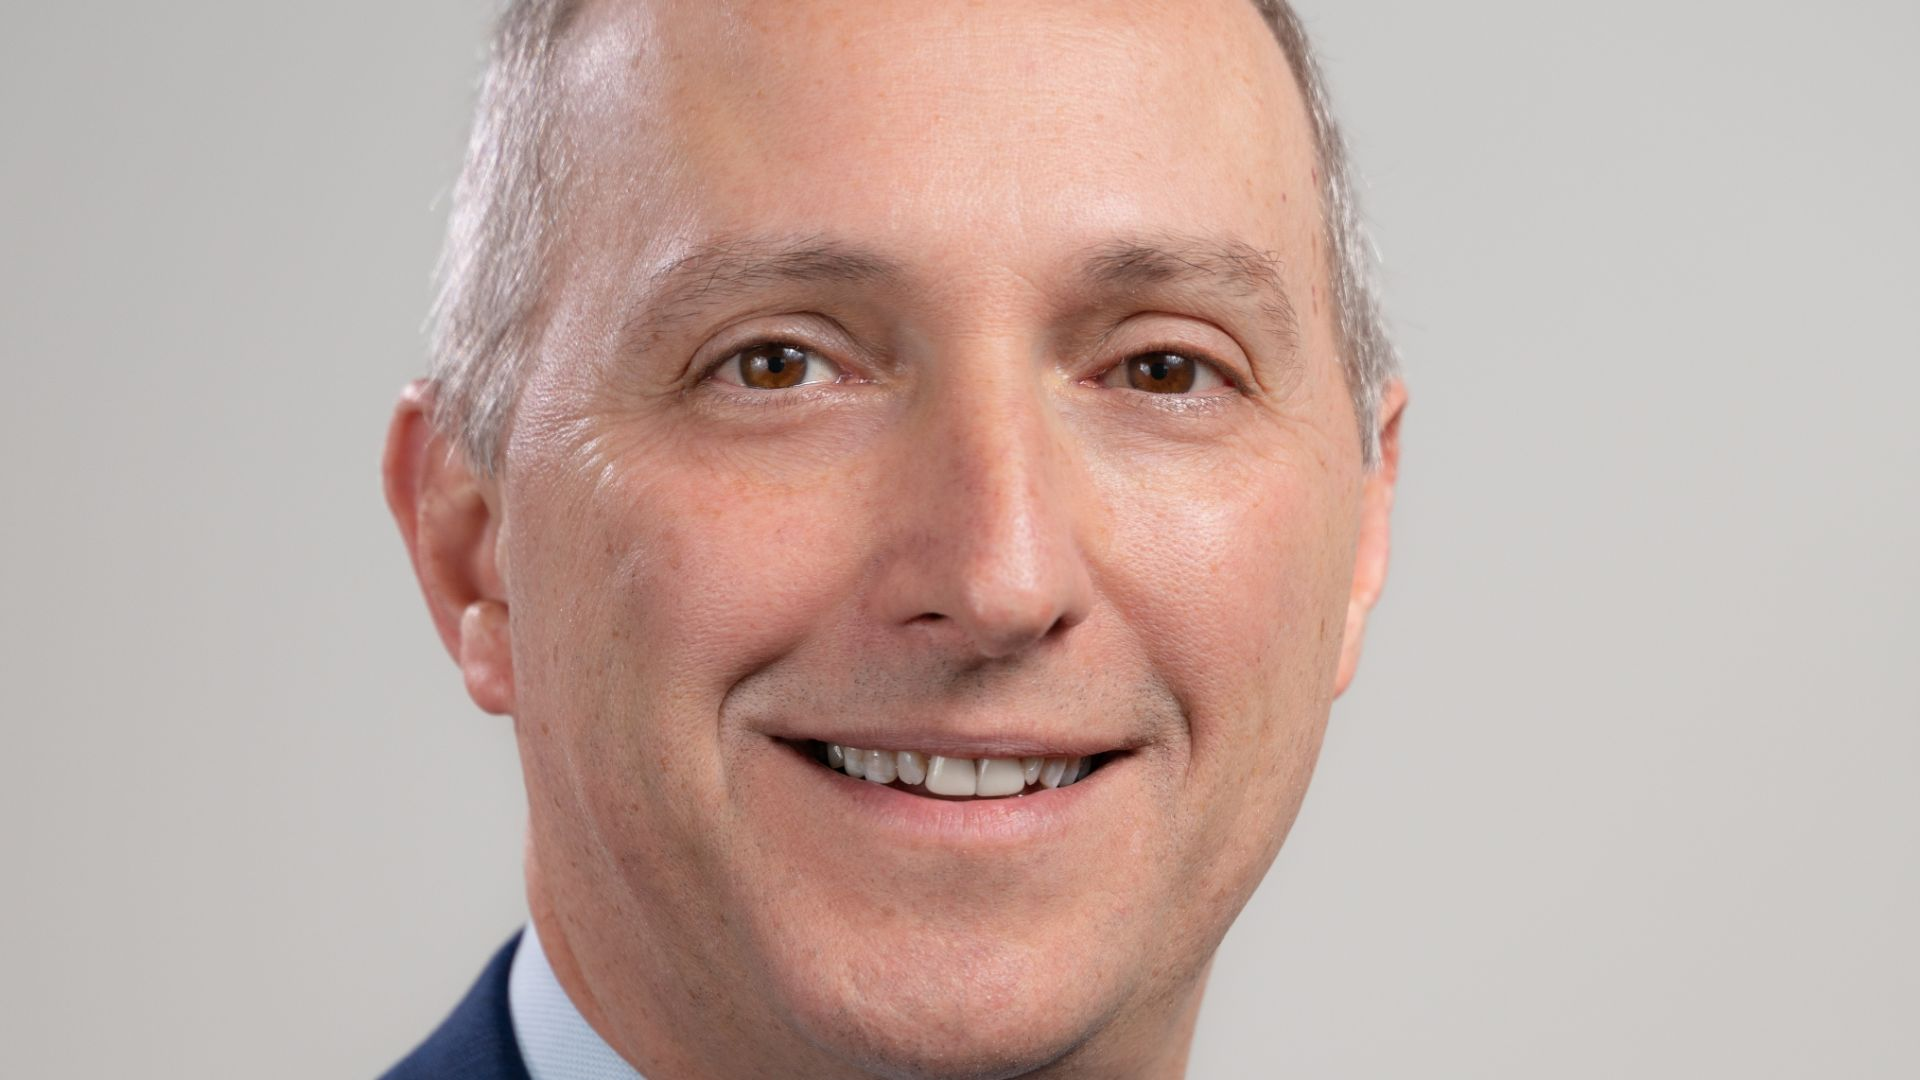 Charles Sturt urges federal government to act on the Napthine Review's recommendations